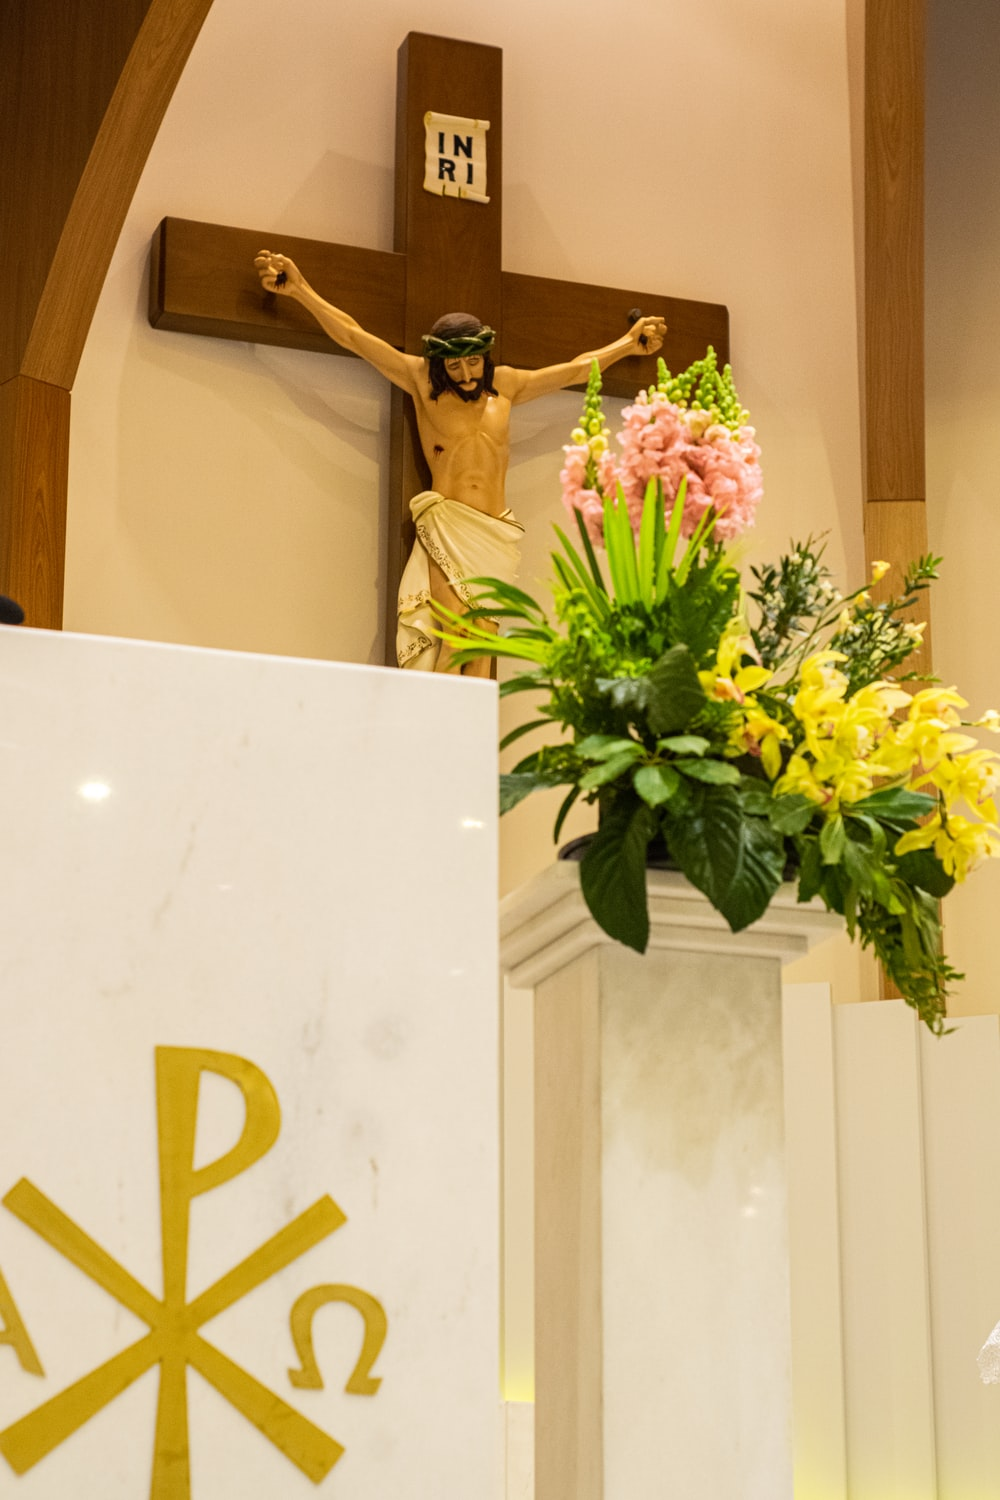 crucifix and flowers